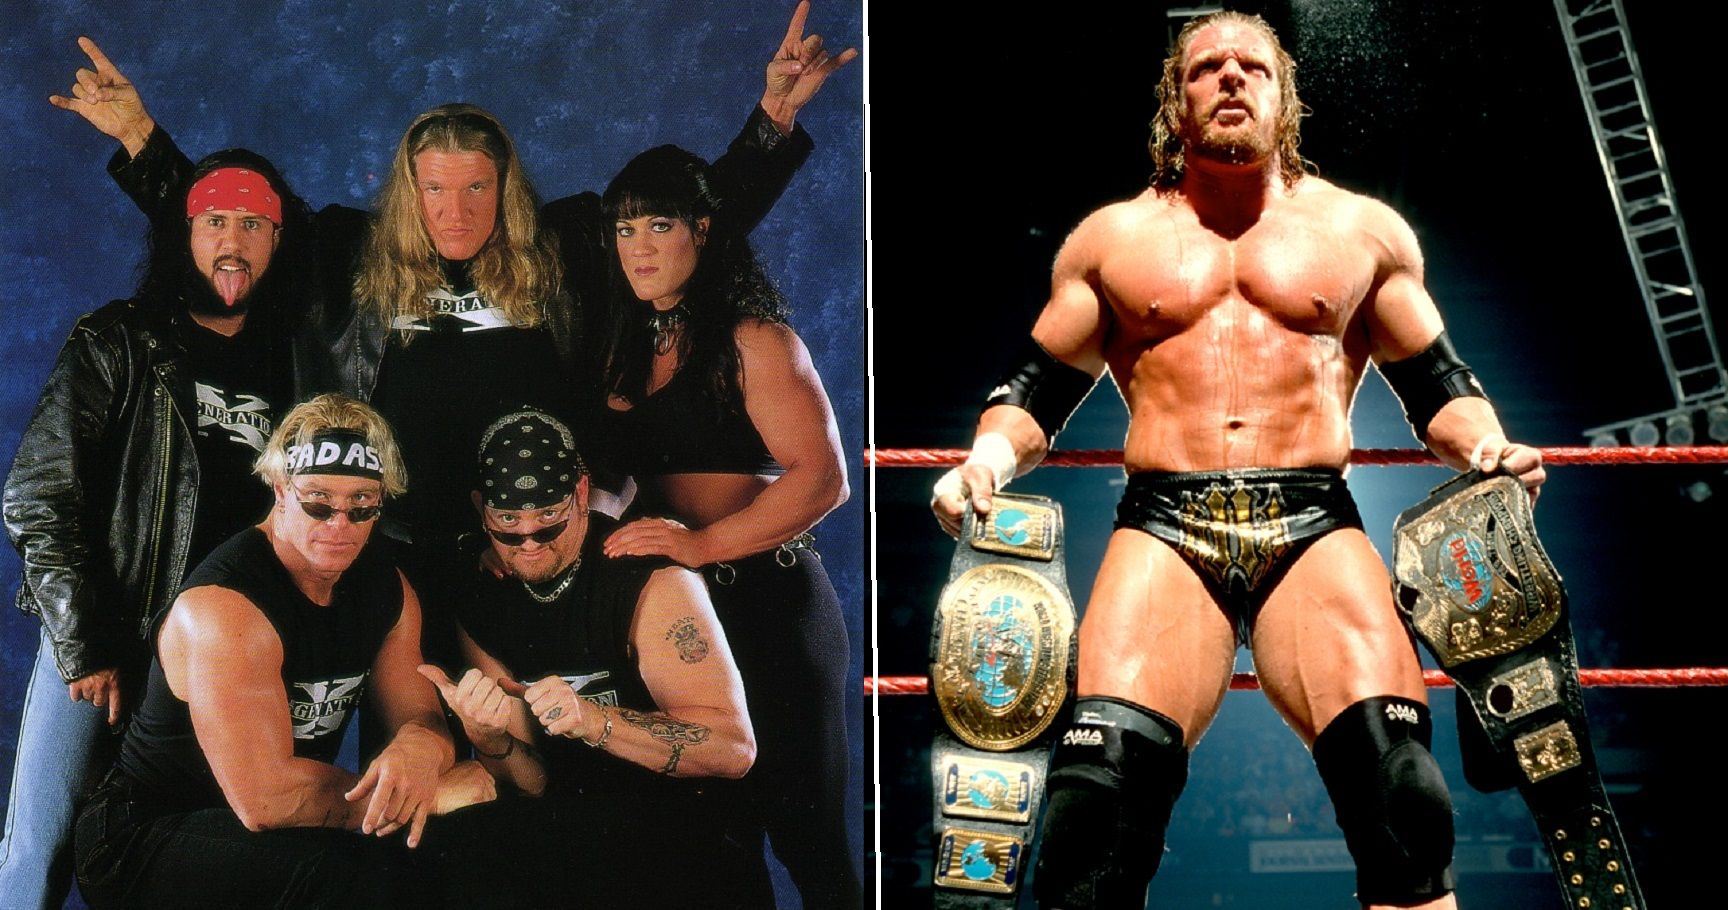 Top 15 Biggest Wrestling Stars To Emerge From Factions